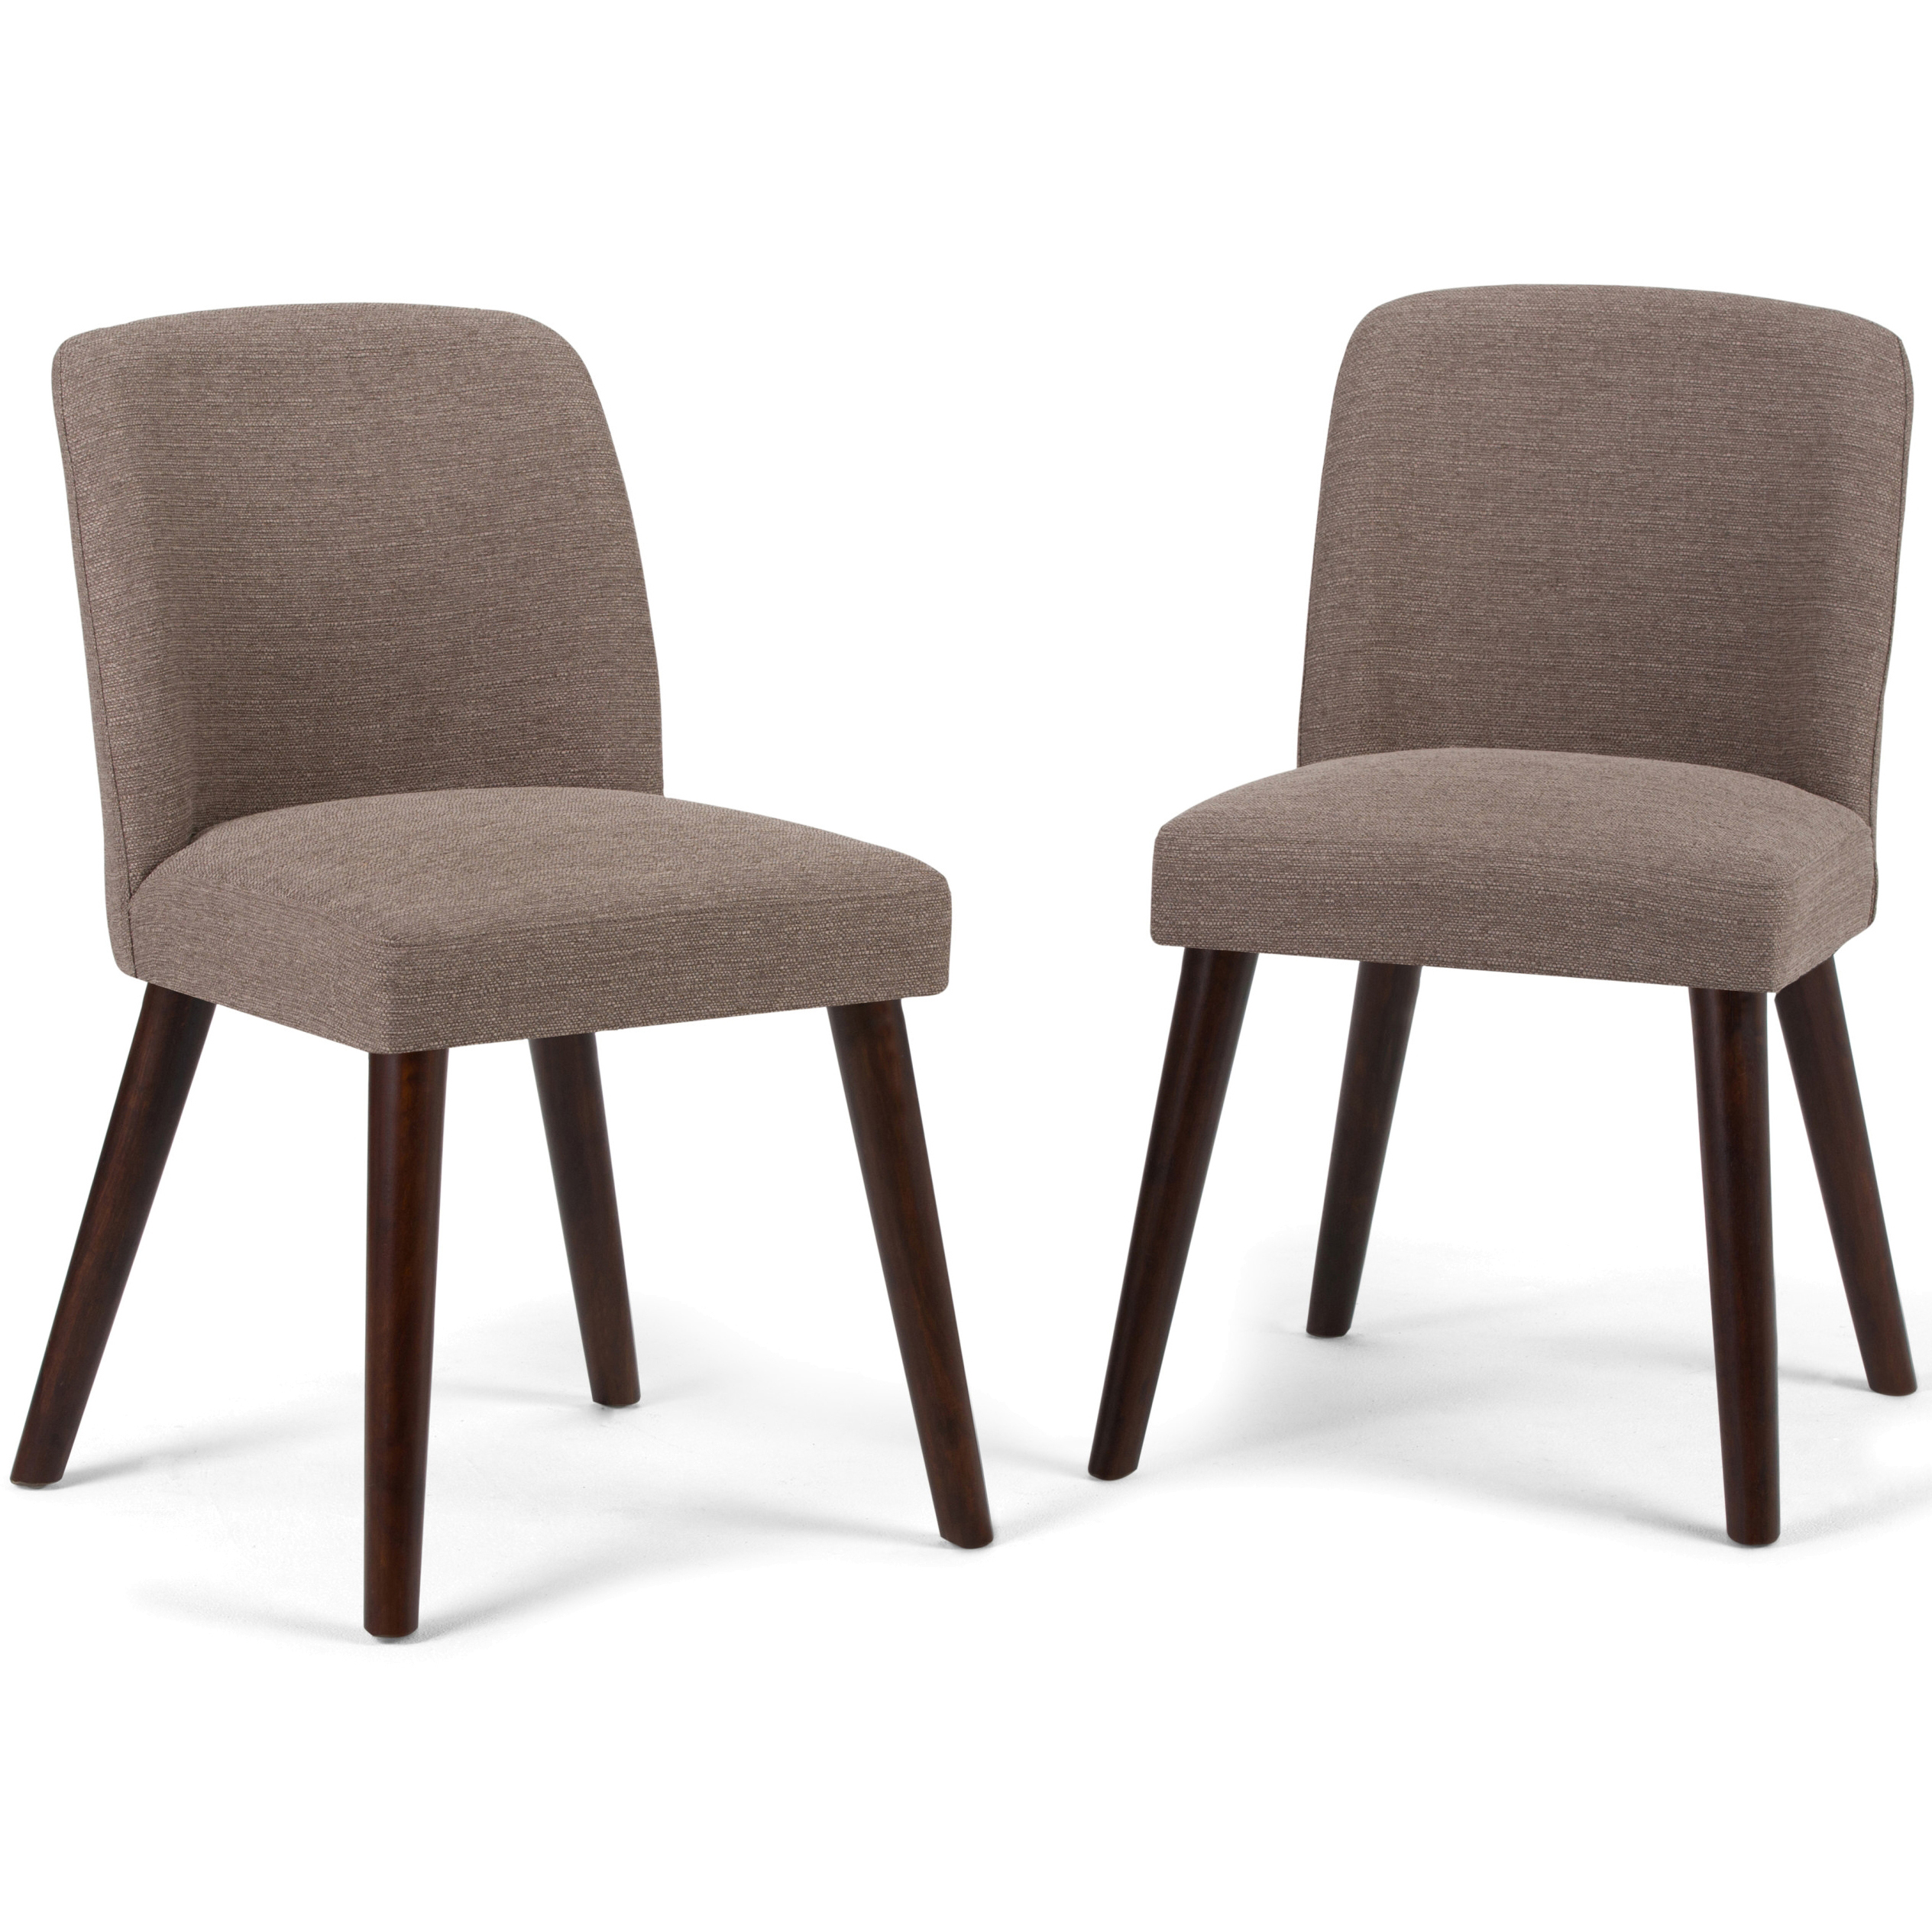 Simpli Home Emery Dining Chair (Set of 2)